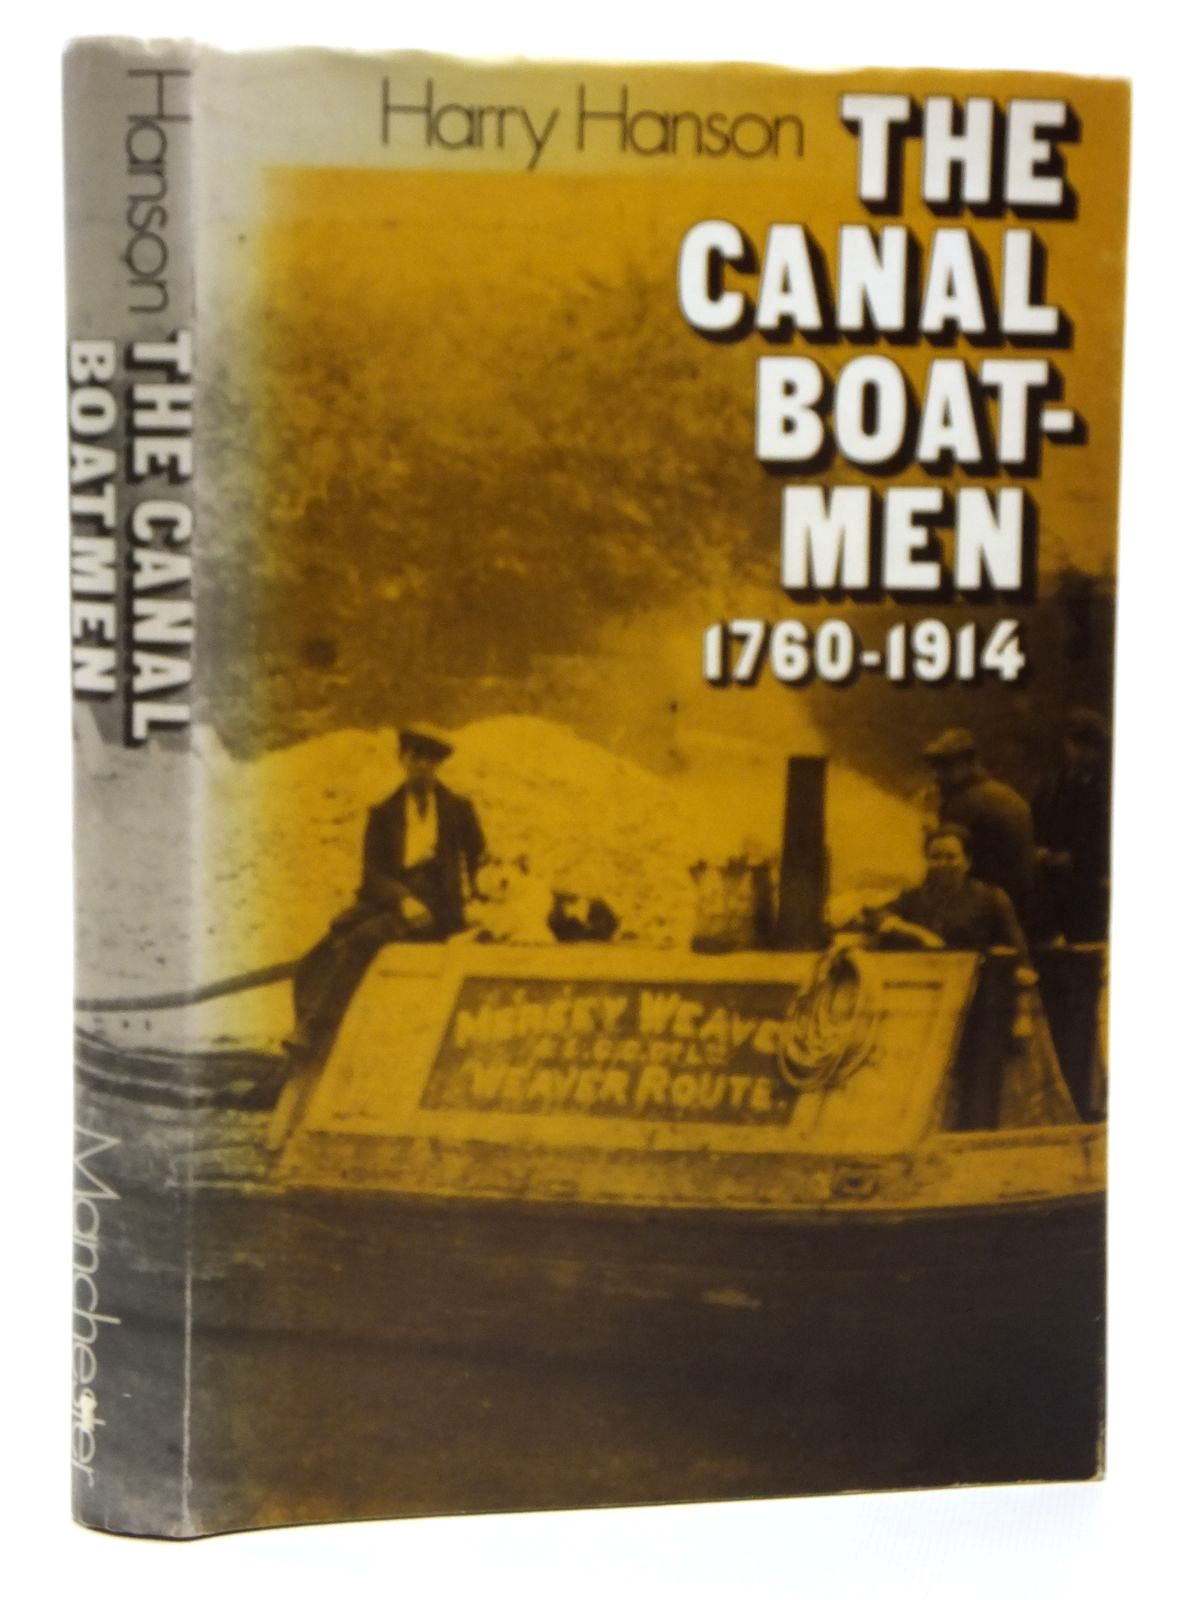 Photo of THE CANAL BOATMEN 1760-1914 written by Hanson, Harry published by Manchester University Press (STOCK CODE: 2121115)  for sale by Stella & Rose's Books